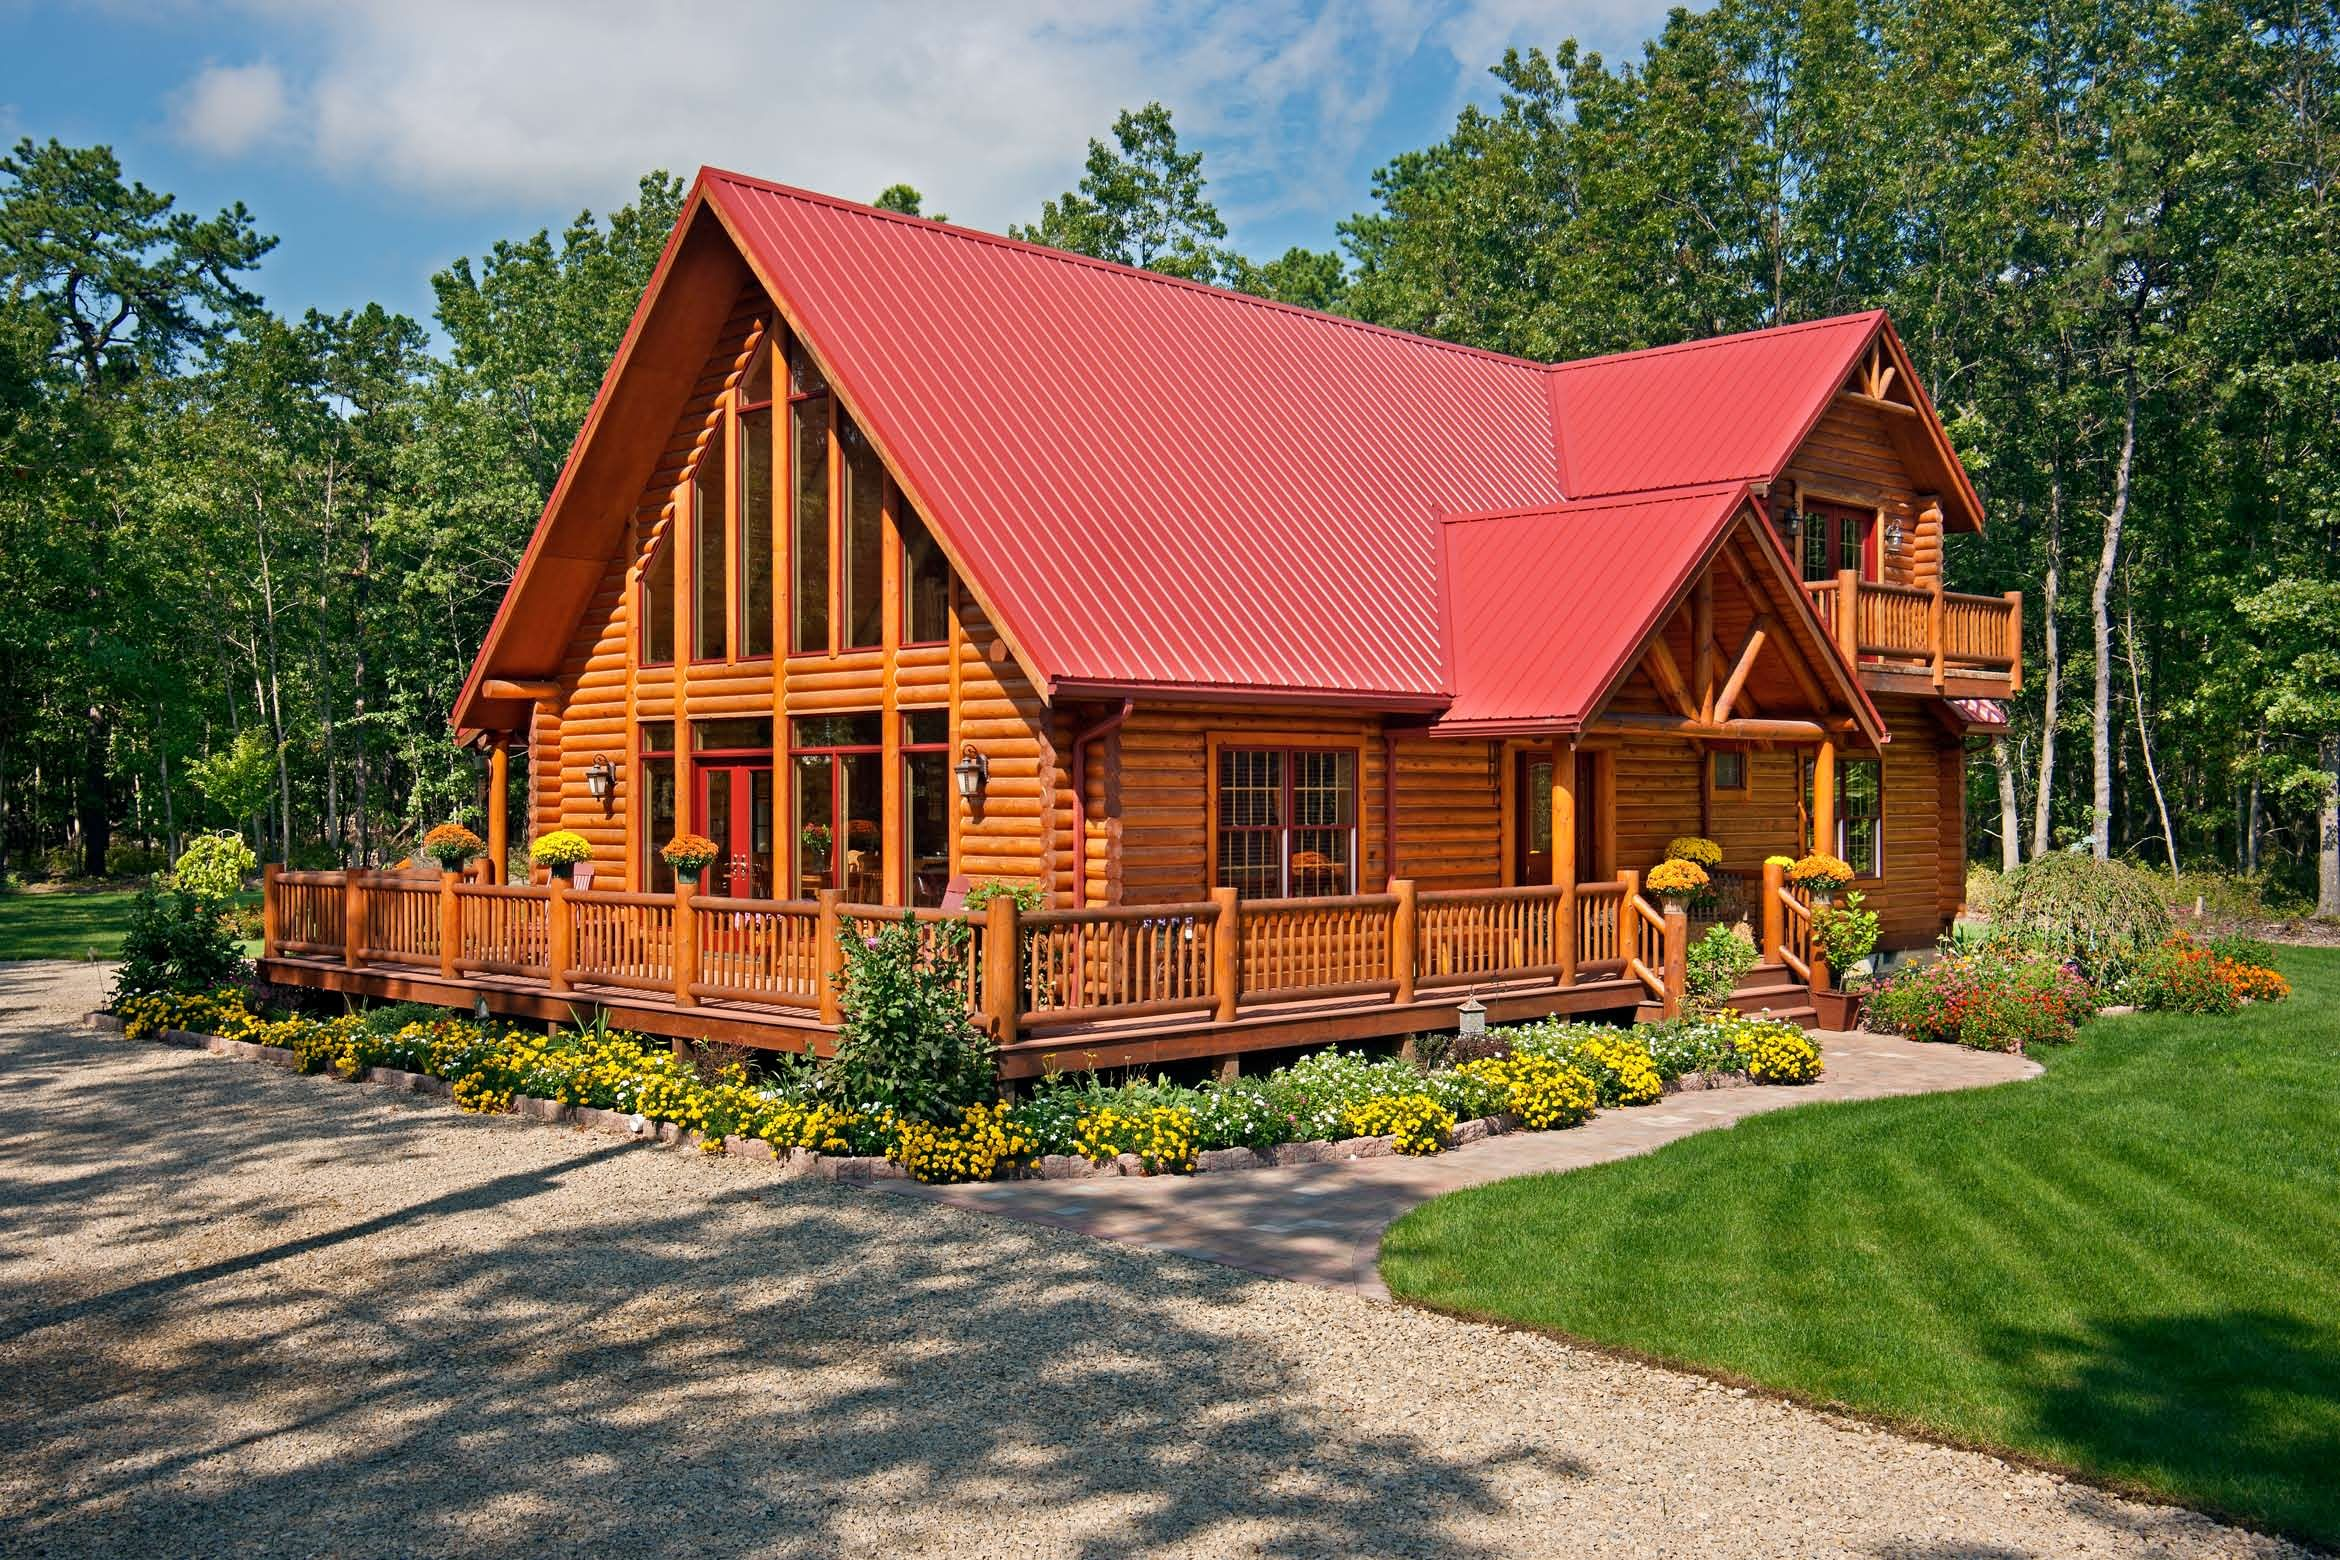 This Log Home Features A Red Metal Roof And A Wraparound